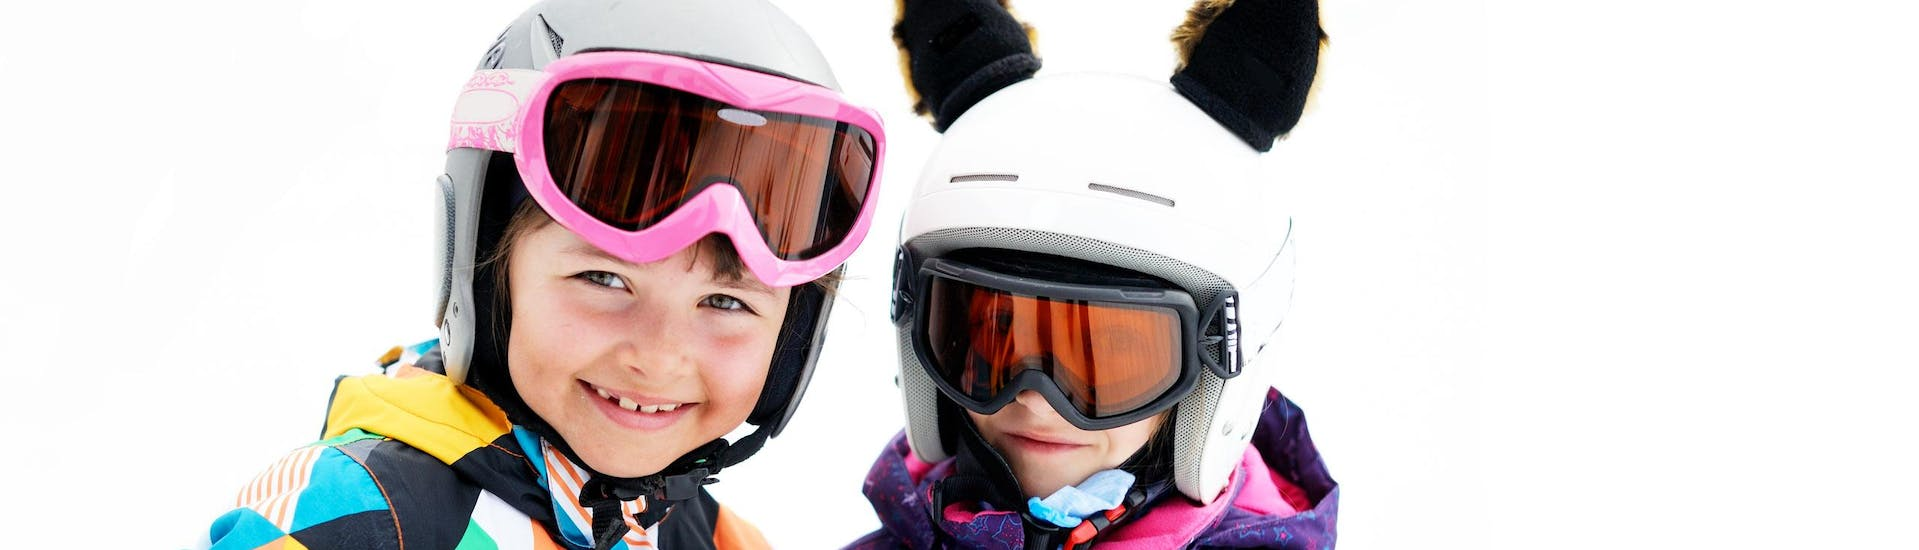 Two young children smiling at the camera during one of the Kids Ski Lessons (6-12 y.) for Beginners - Full Day organised by European Snowsport Zermatt.